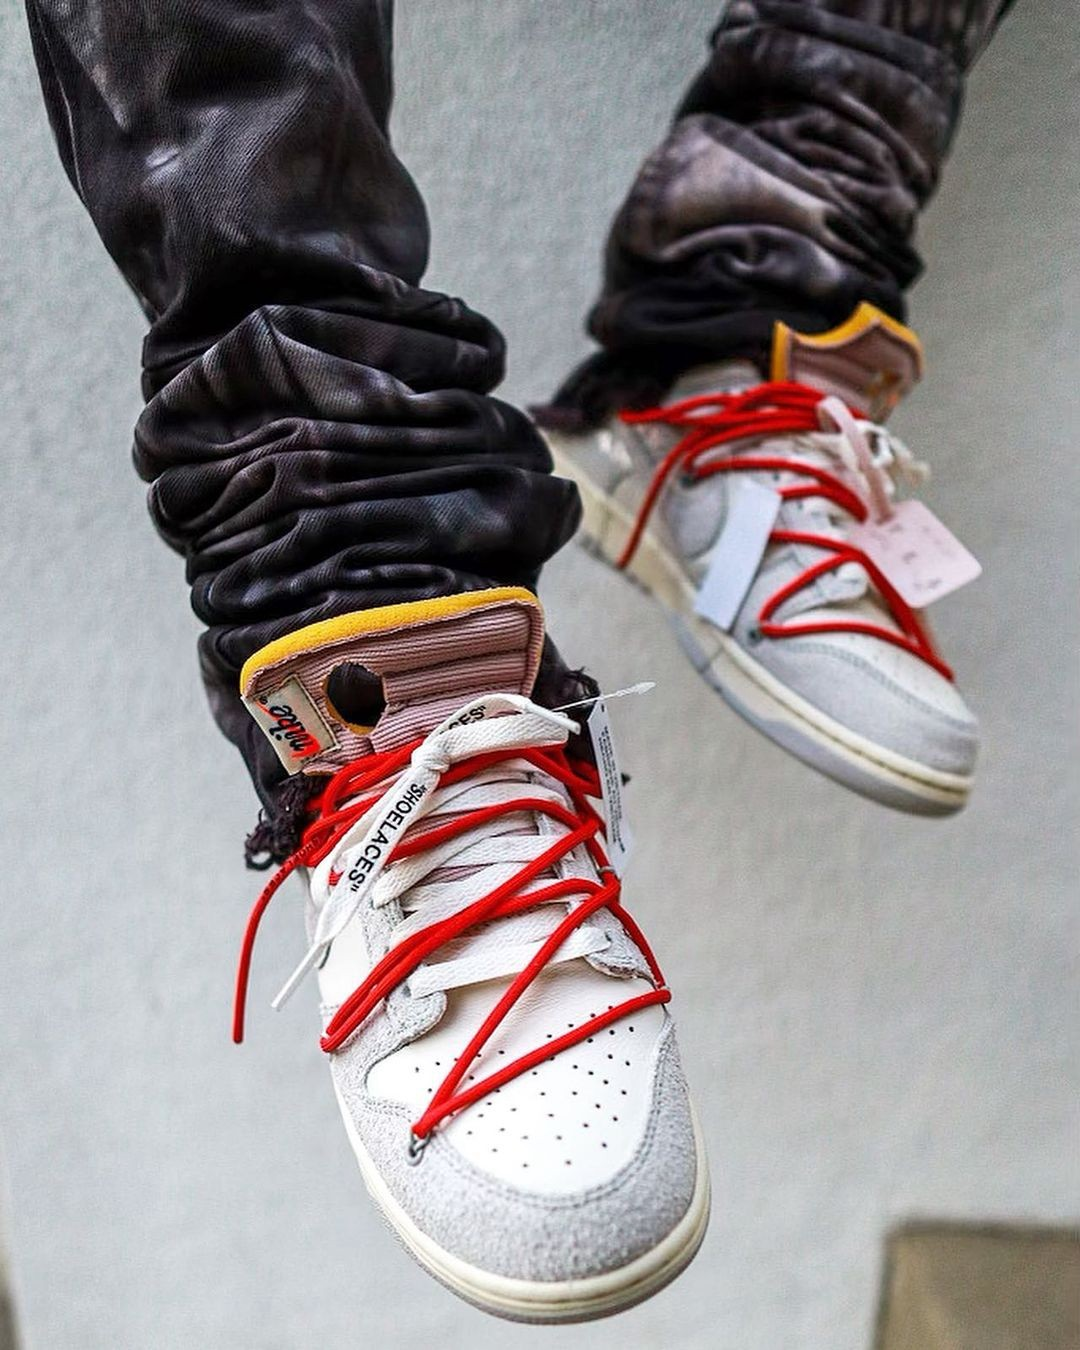 OFF-WHITE,Nike Dunk Low,The 50  随时可能突袭?!「THE 50」OW x Dunk Low 上脚图首次曝光!